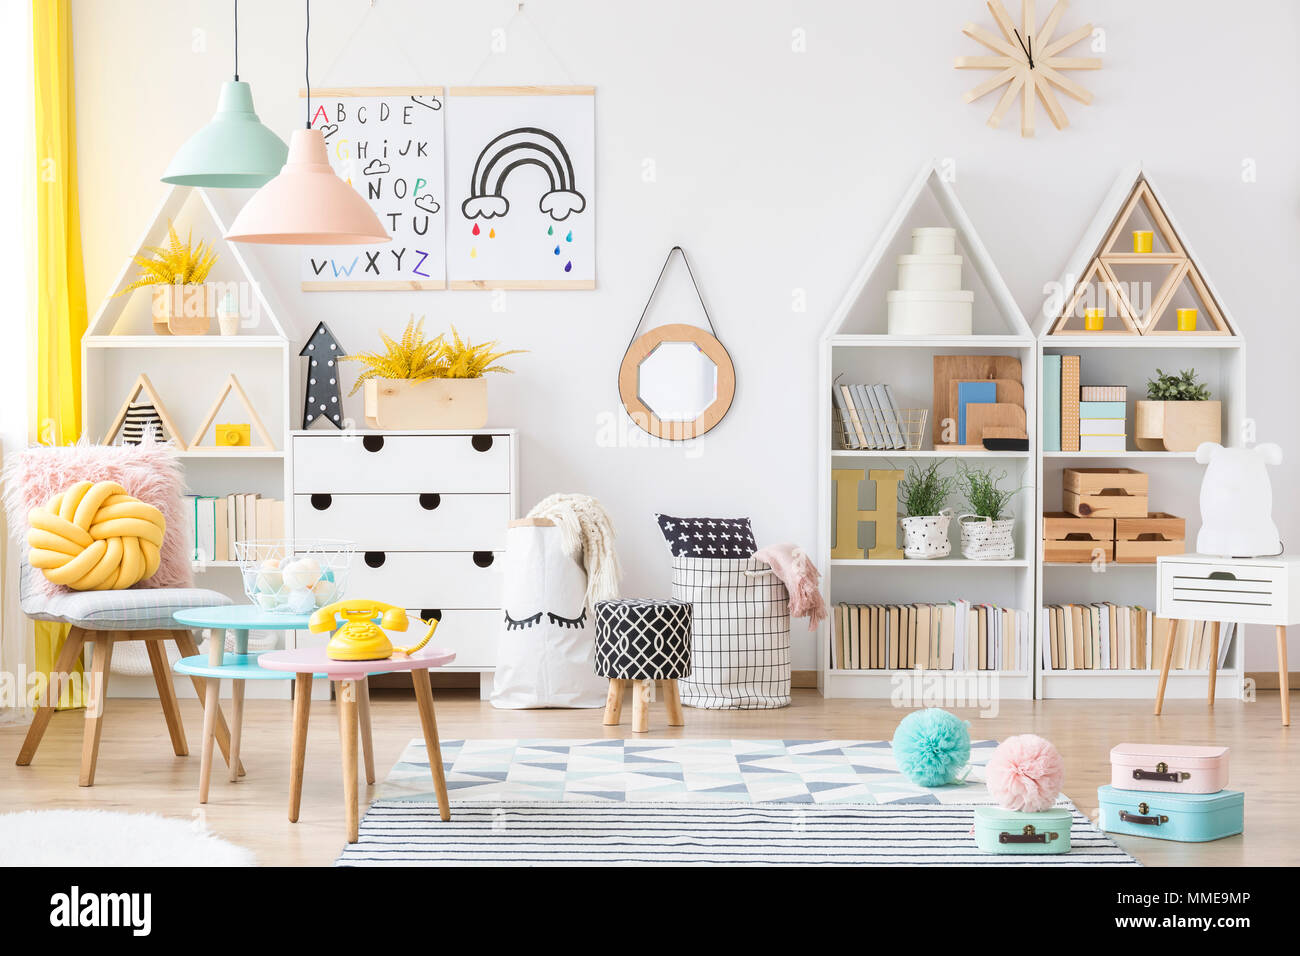 Two Simple Posters Hanging On White Wall In Kids Room Interior With  Material Baskets, Wooden Furniture And Pastel Lamps